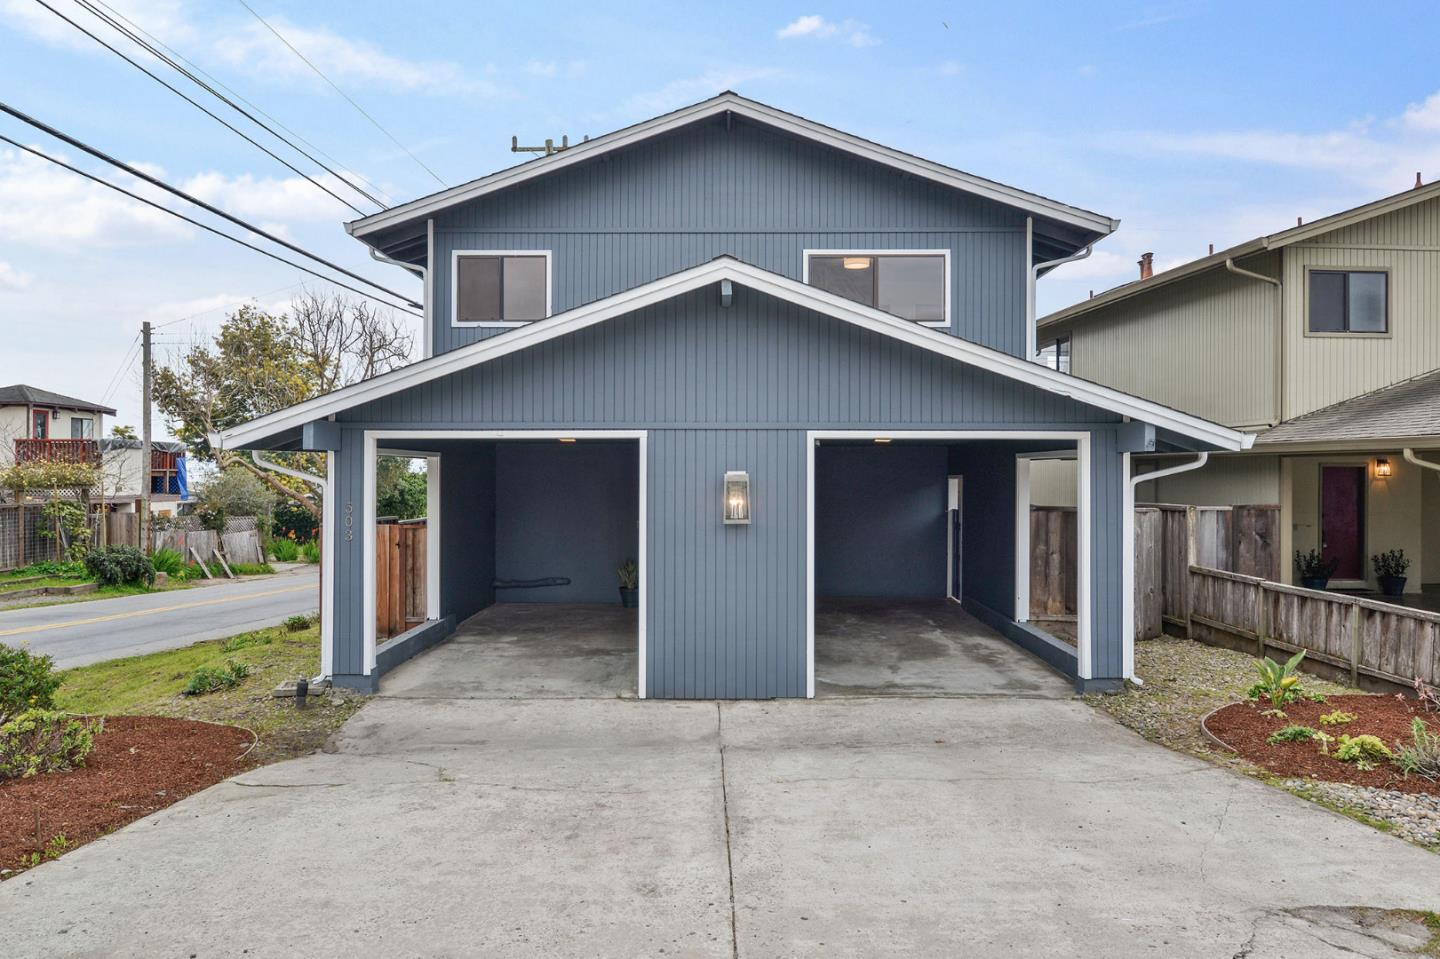 Detail Gallery Image 1 of 1 For 503 Middlefield Dr, Aptos, CA, 95003 - 3 Beds | 2 Baths